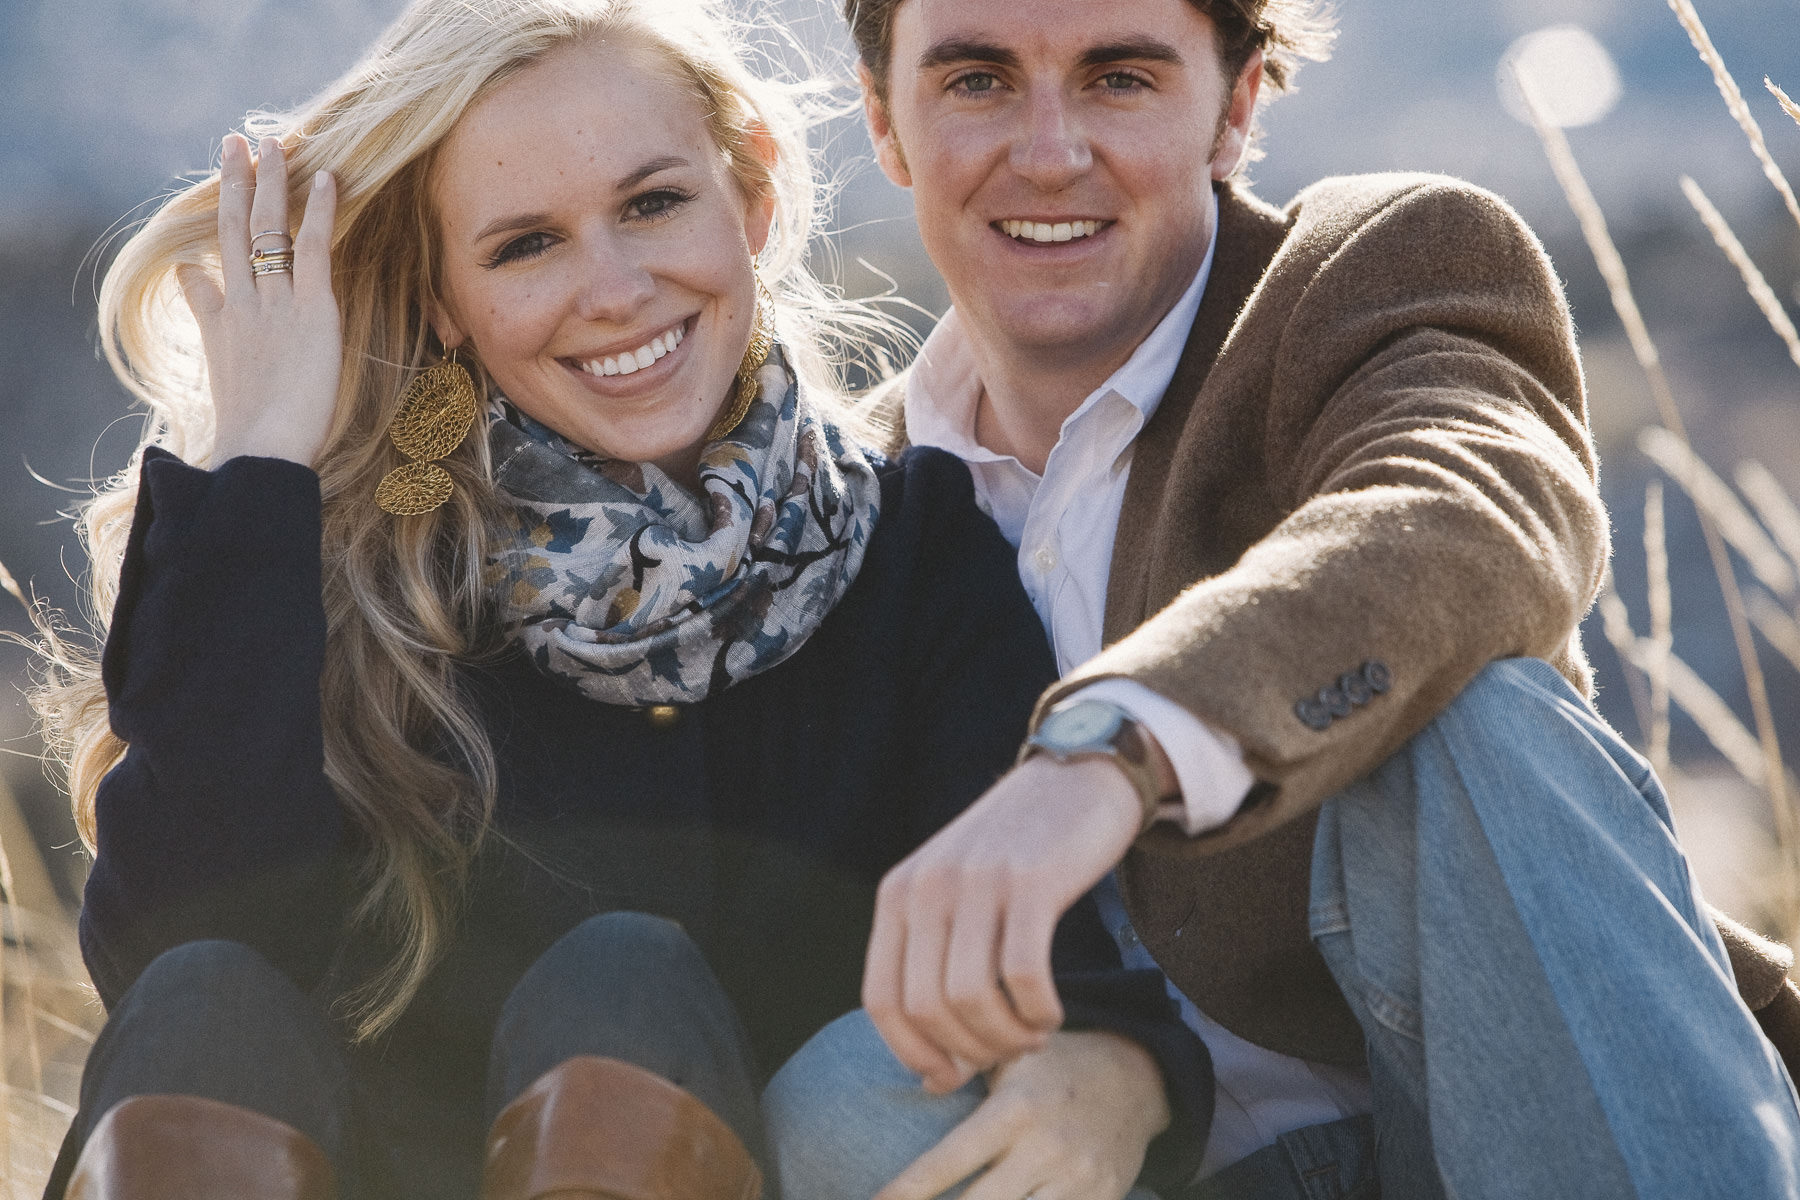 Engaged couple in black coat, camel hair coat and jeans sit in a sun-drenched field.